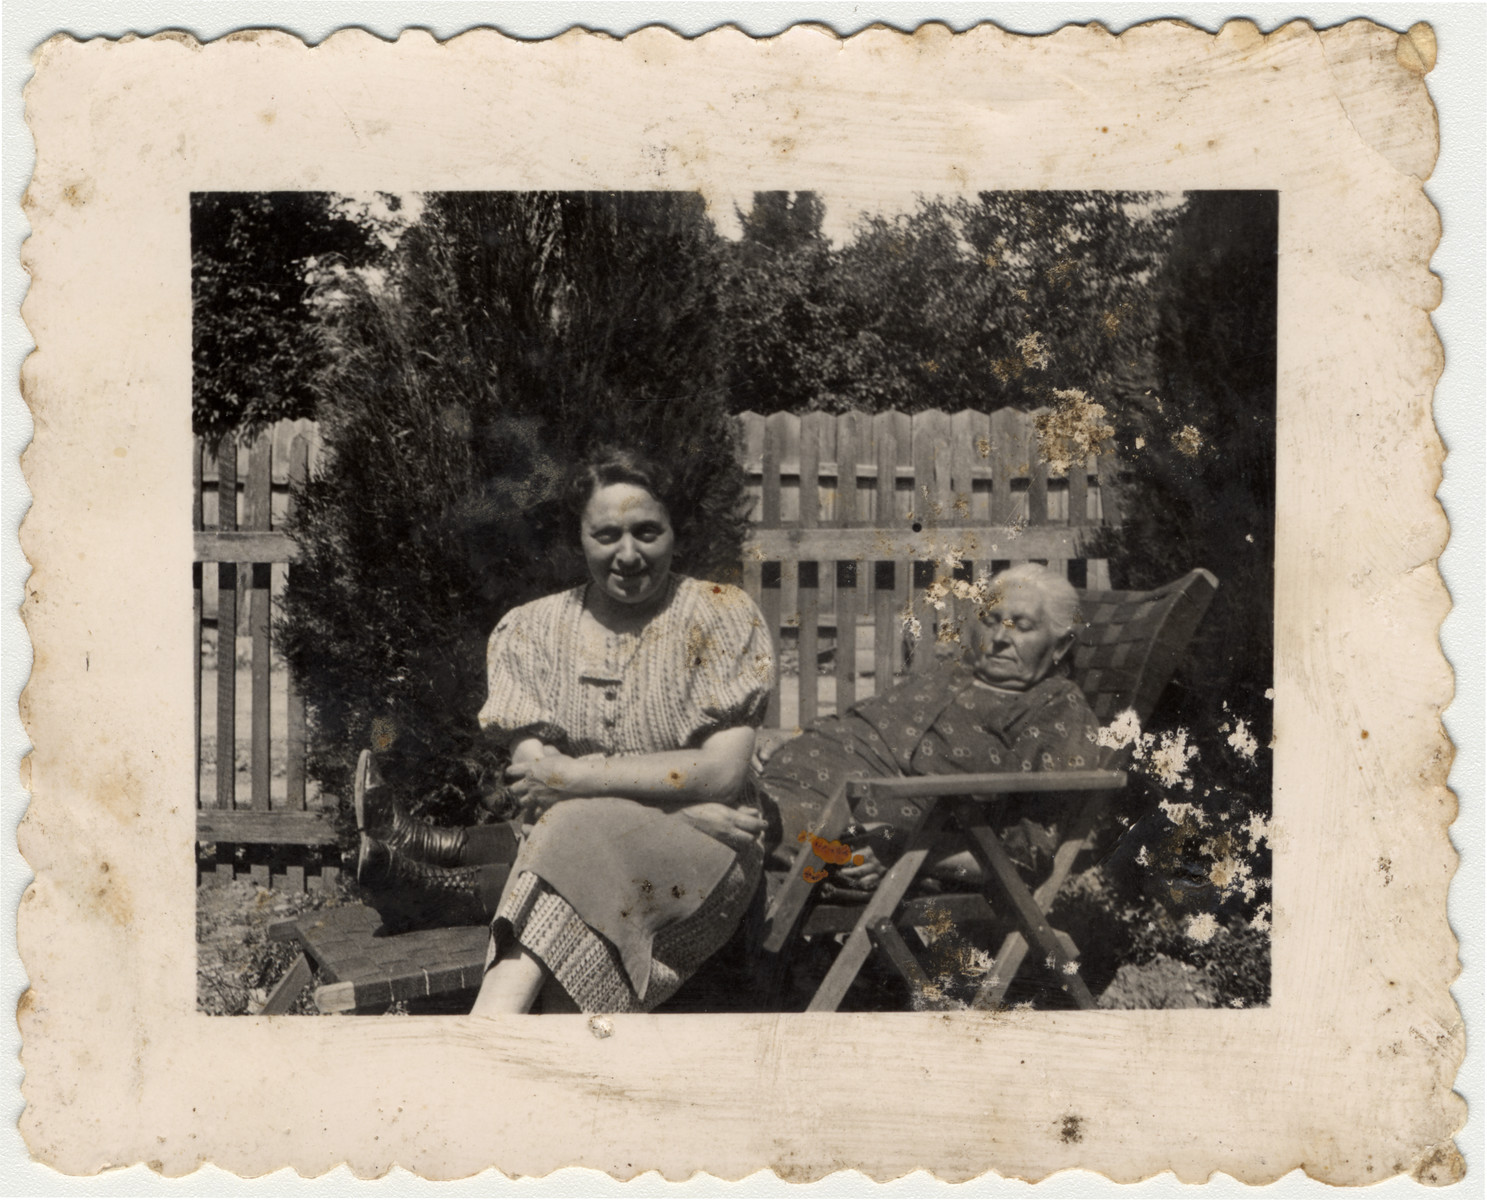 Etel Gruenstein Brand and [probably her mother] sit outside in a sunny garden.